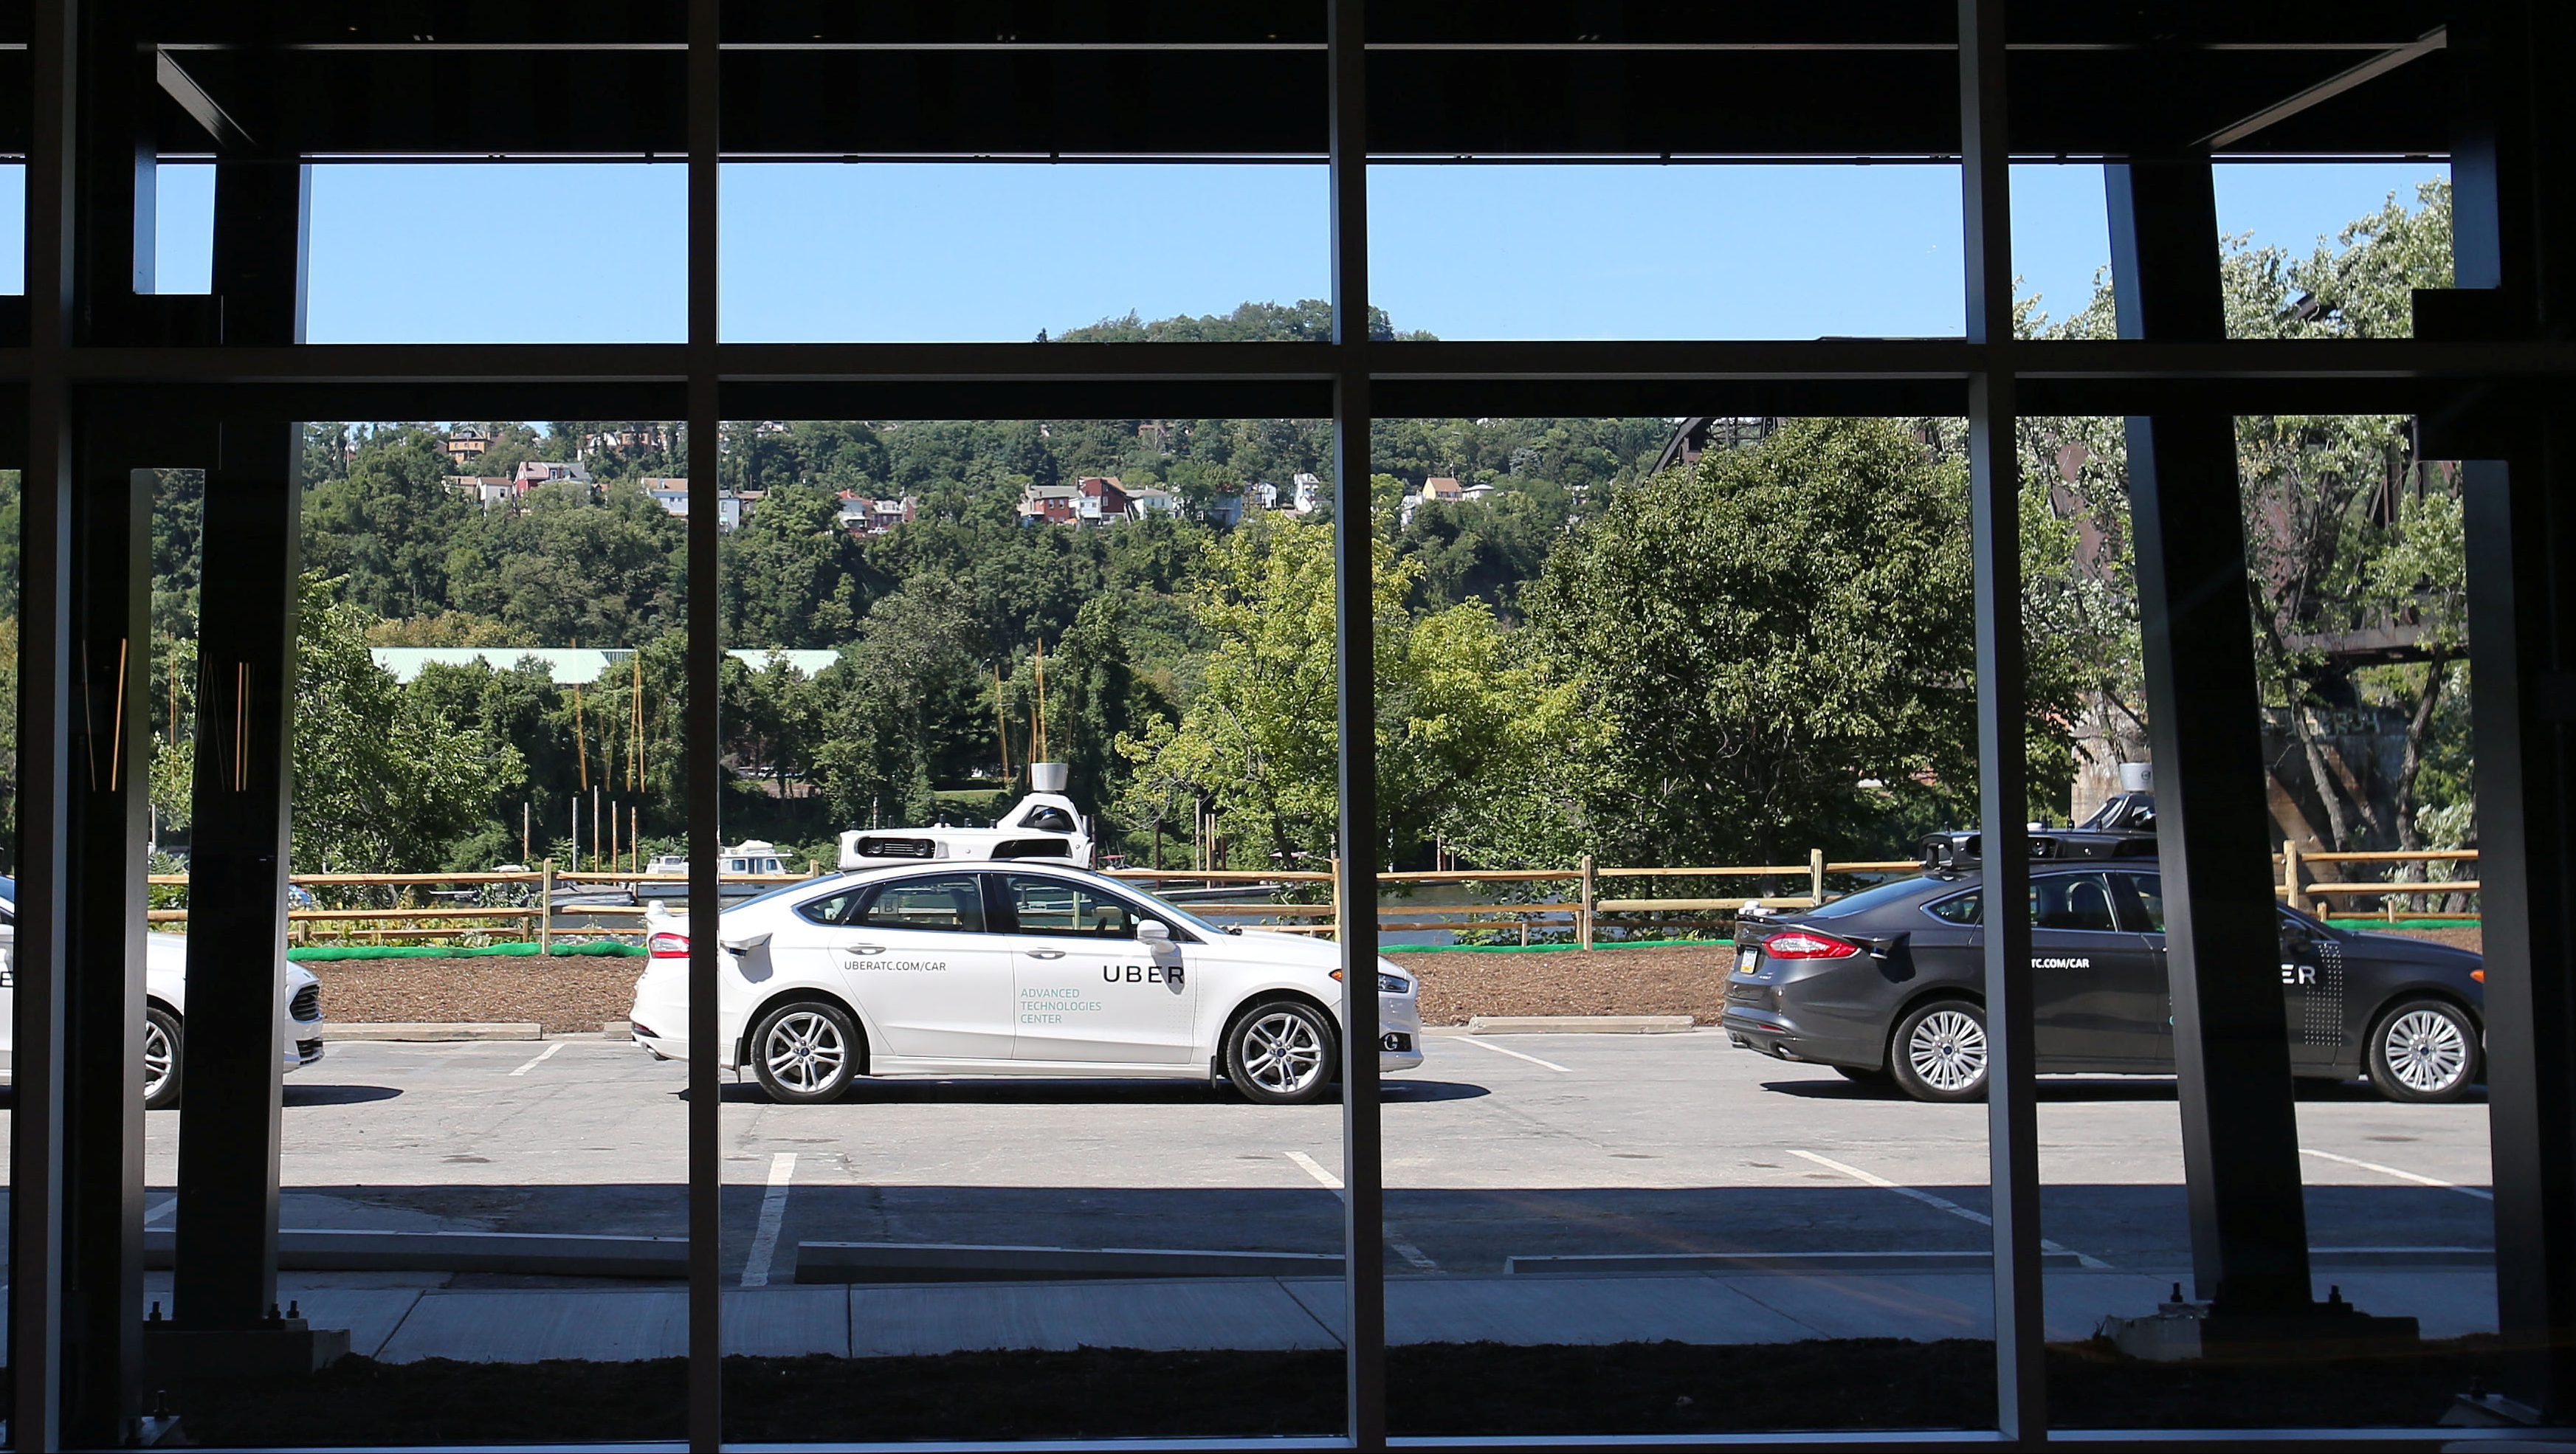 A fleet of Uber's Ford Fusion self driving cars are shown through the lobby windows during a demonstration of self-driving automotive technology in Pittsburgh, Pennsylvania, U.S. September 13, 2016.  REUTERS/Aaron Josefczyk - RTSNO61